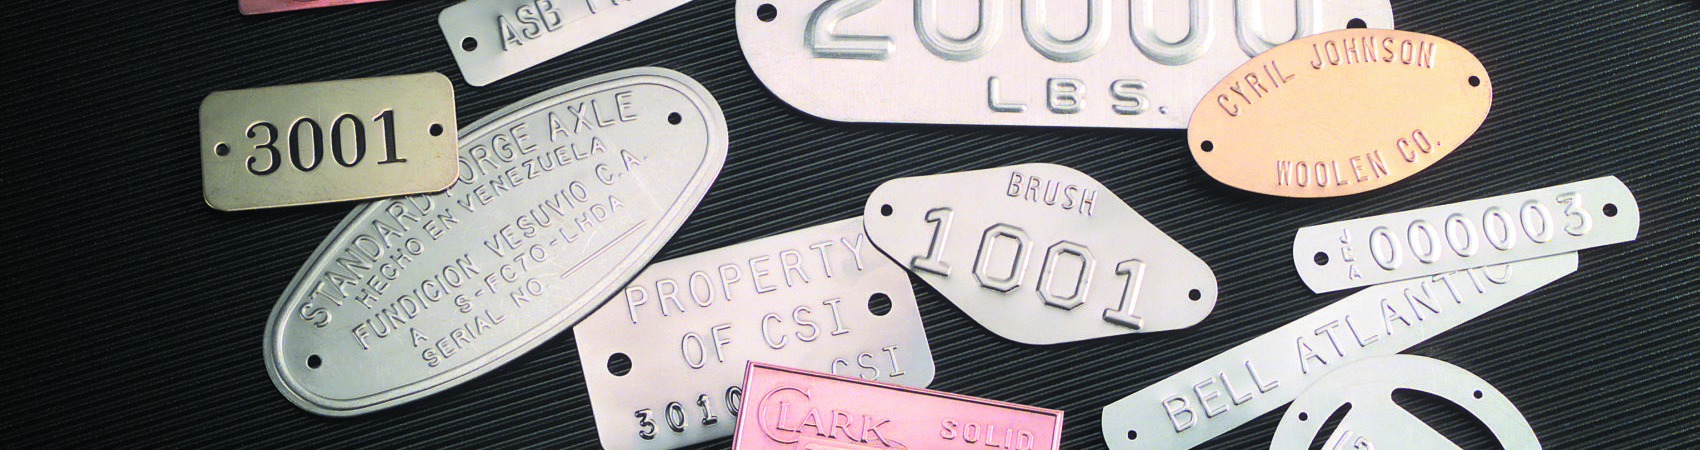 Various Metal Tags Banner Image